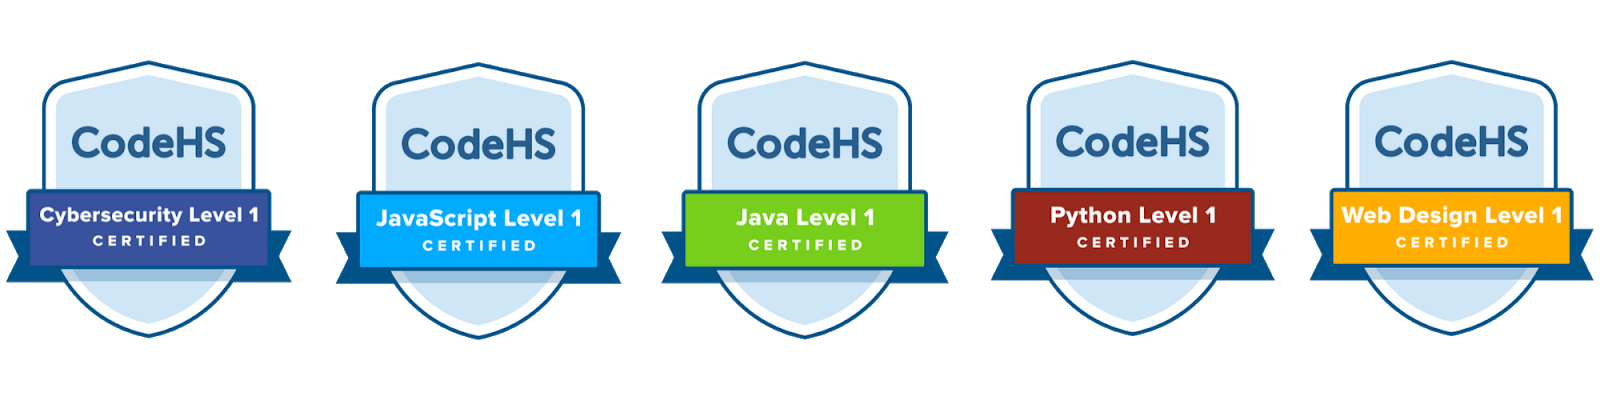 CodeHS badges labeled with certification titles